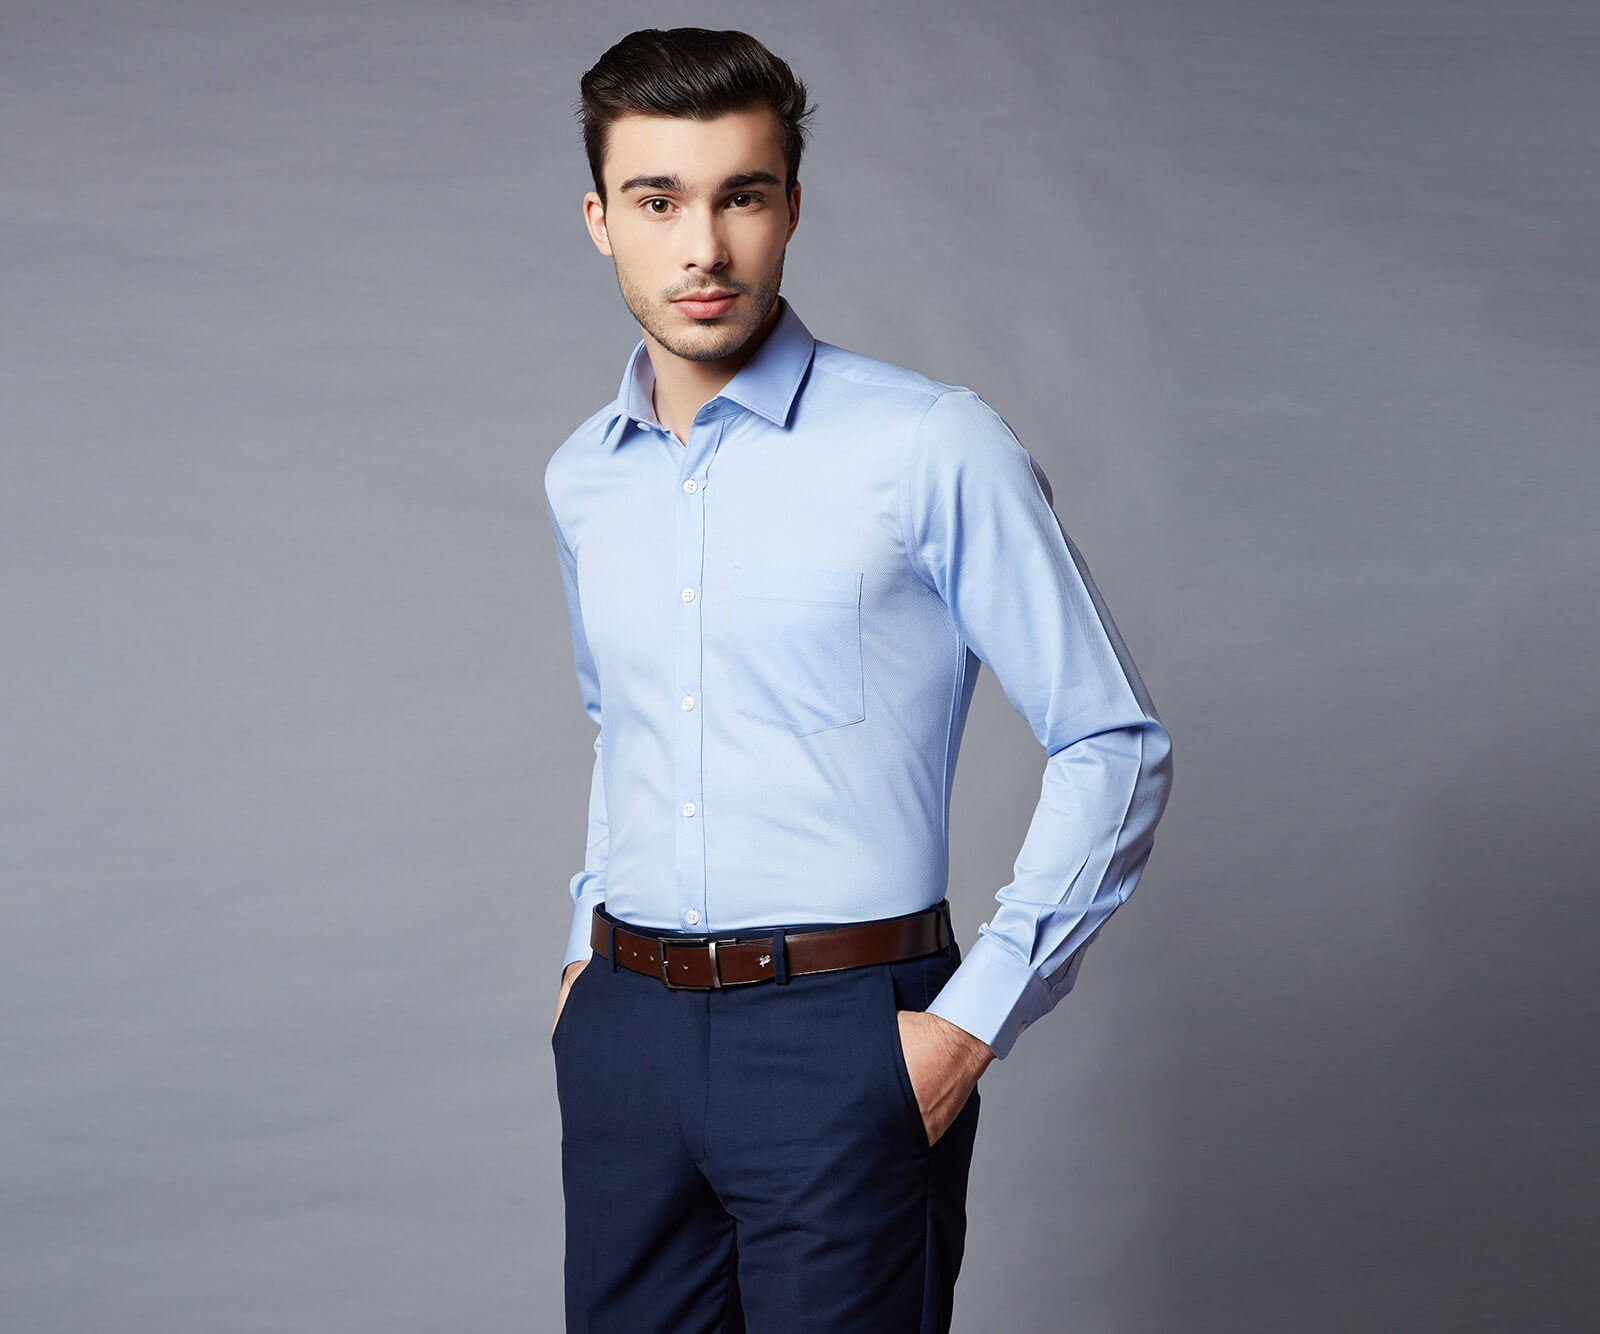 Kensington Blue Dress Shirt